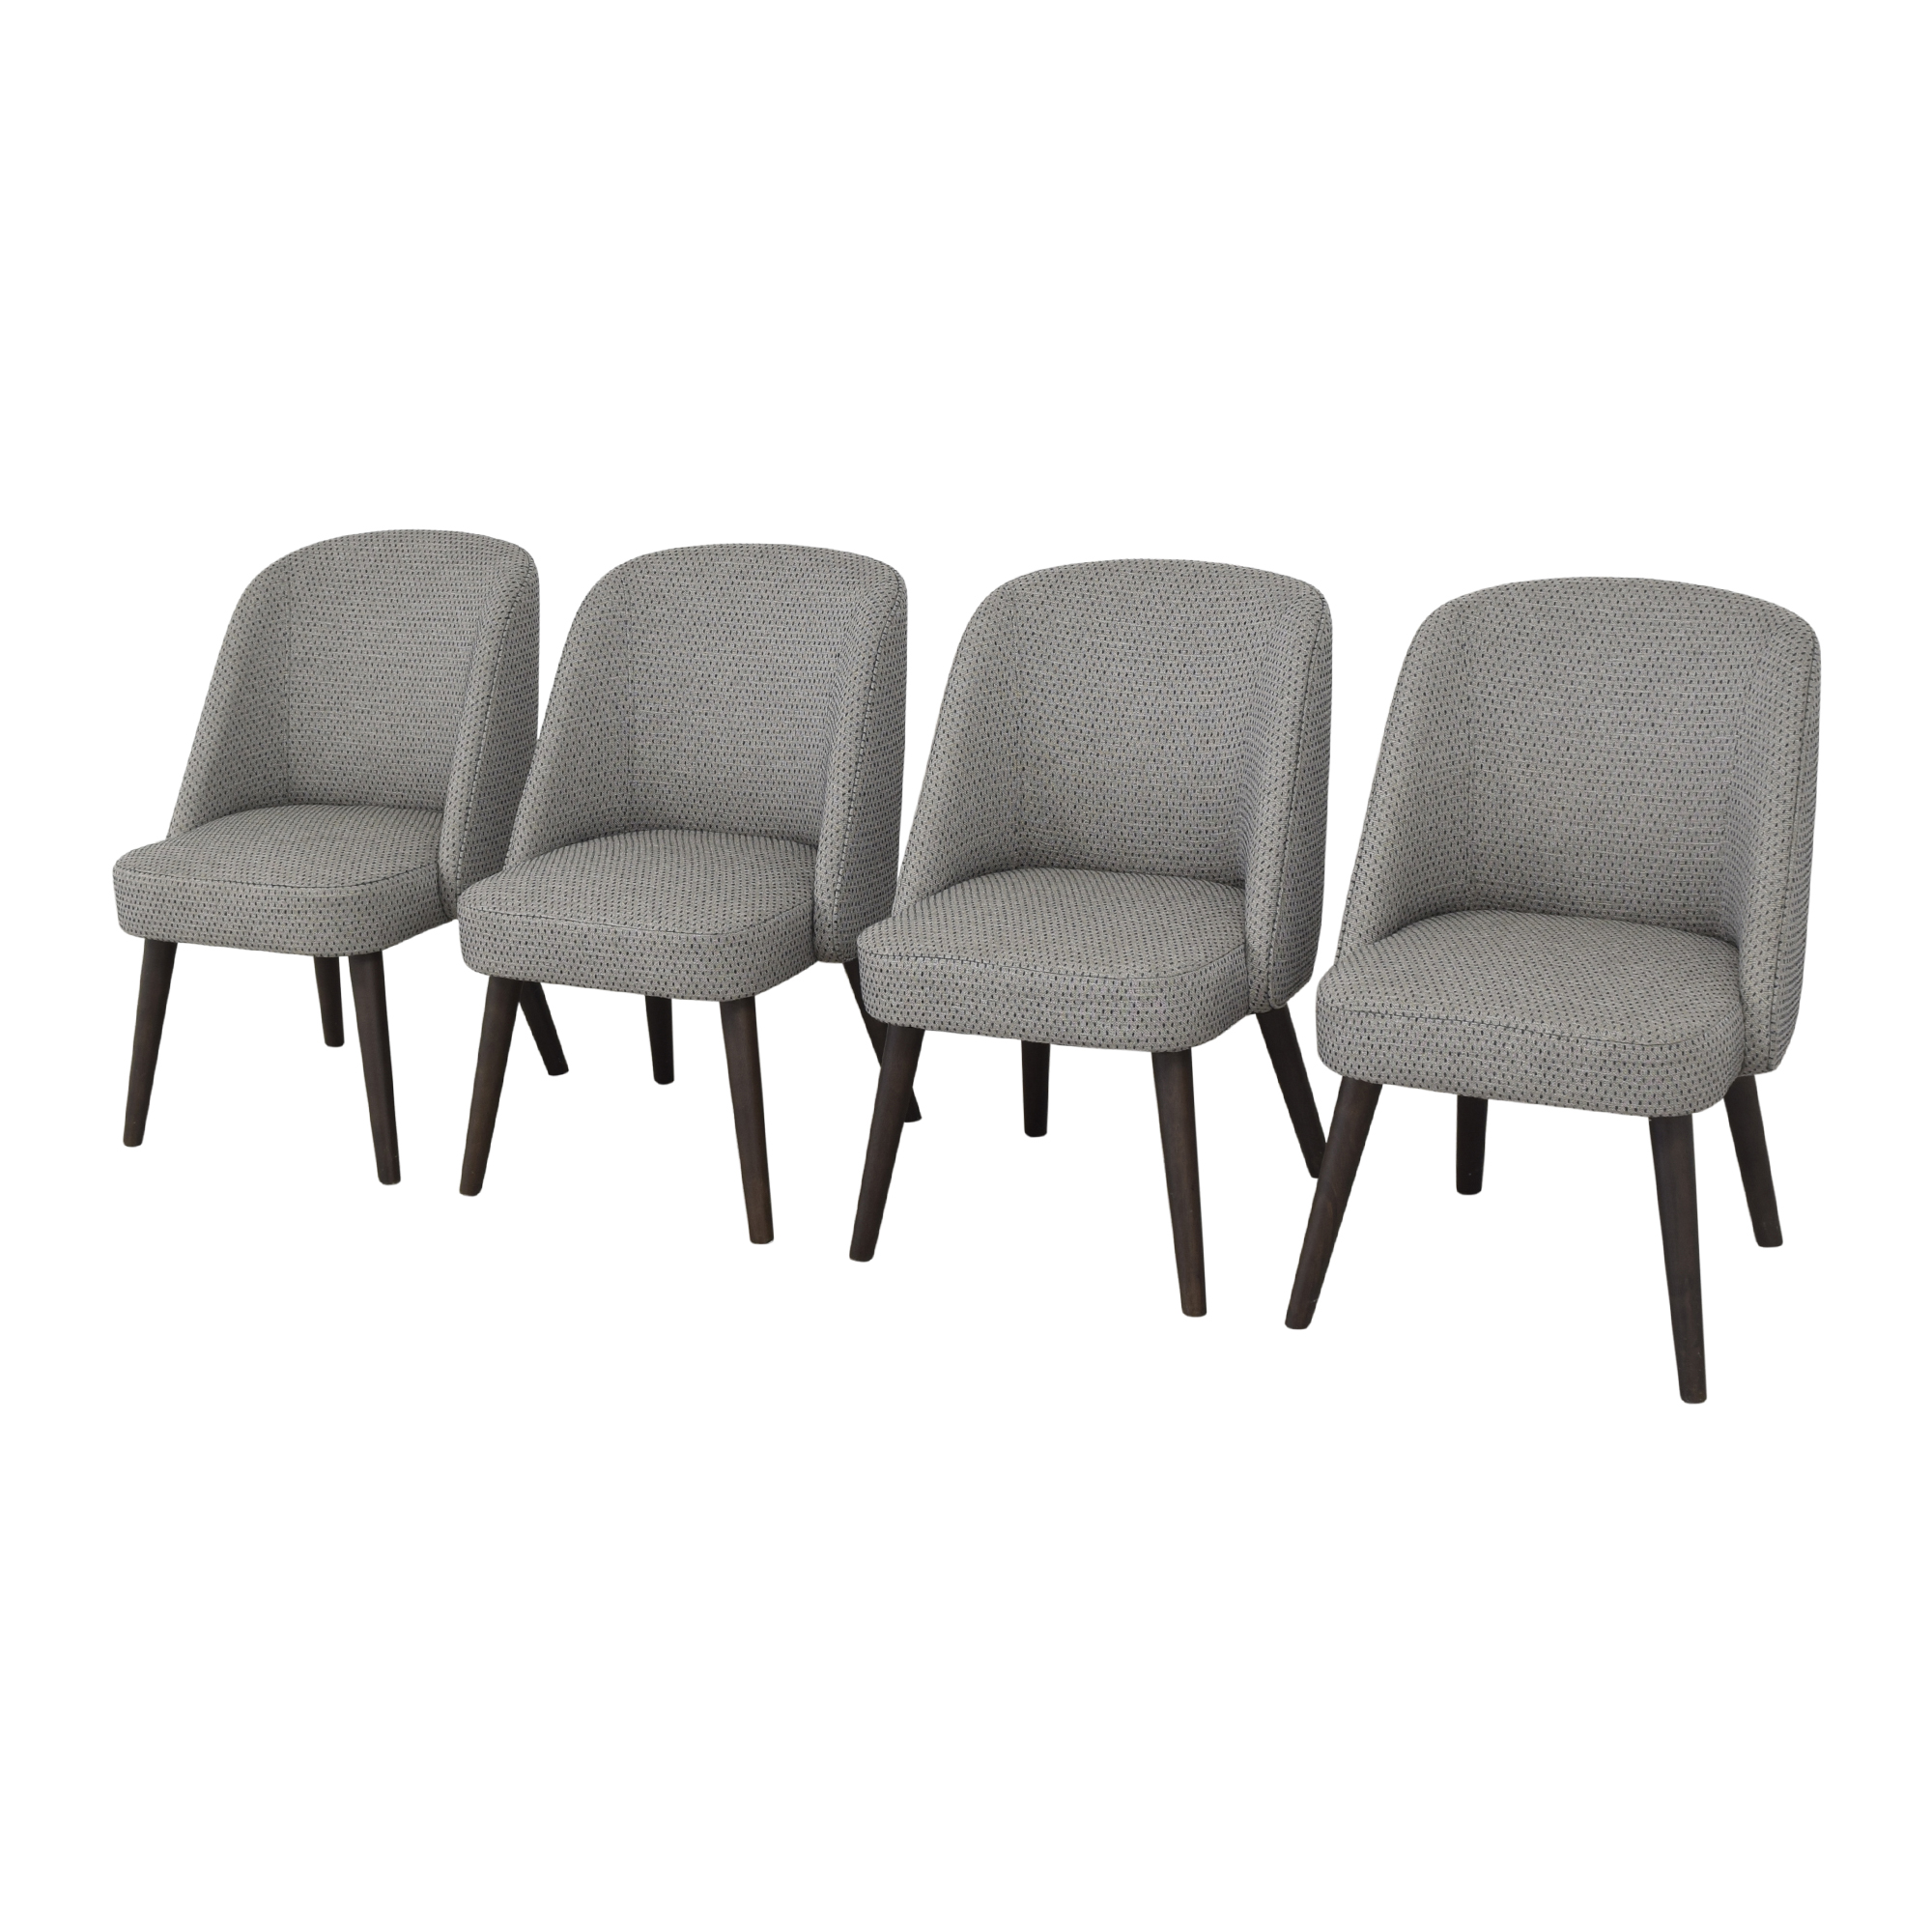 Room & Board Room & Board Cora Dining Chairs discount